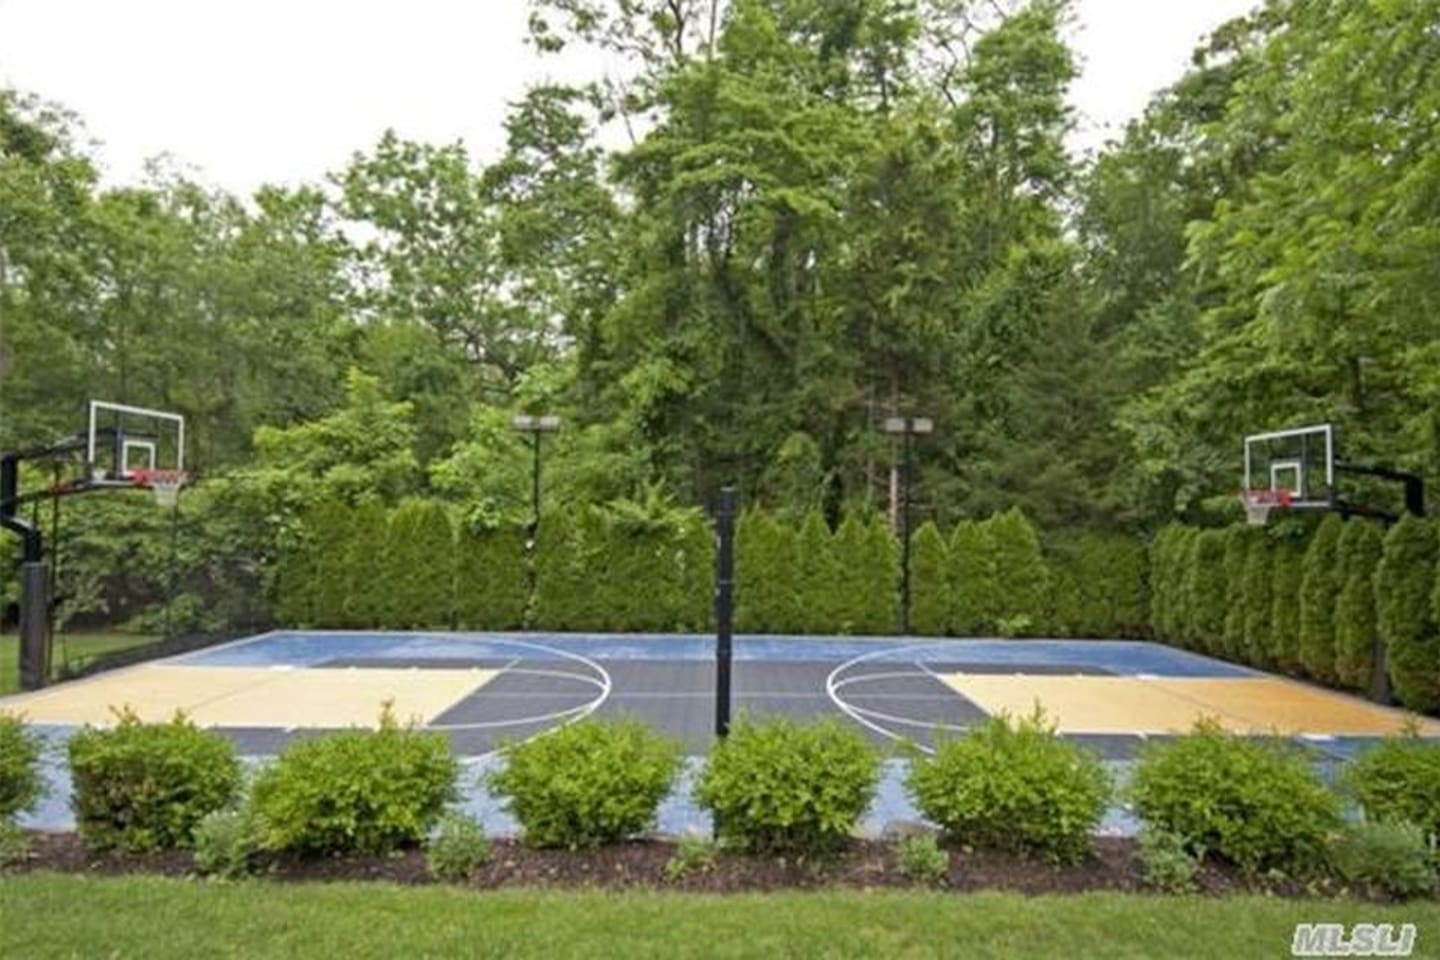 Full-sized multi-sport court. Basketball, tennis, badminton, volleyball.